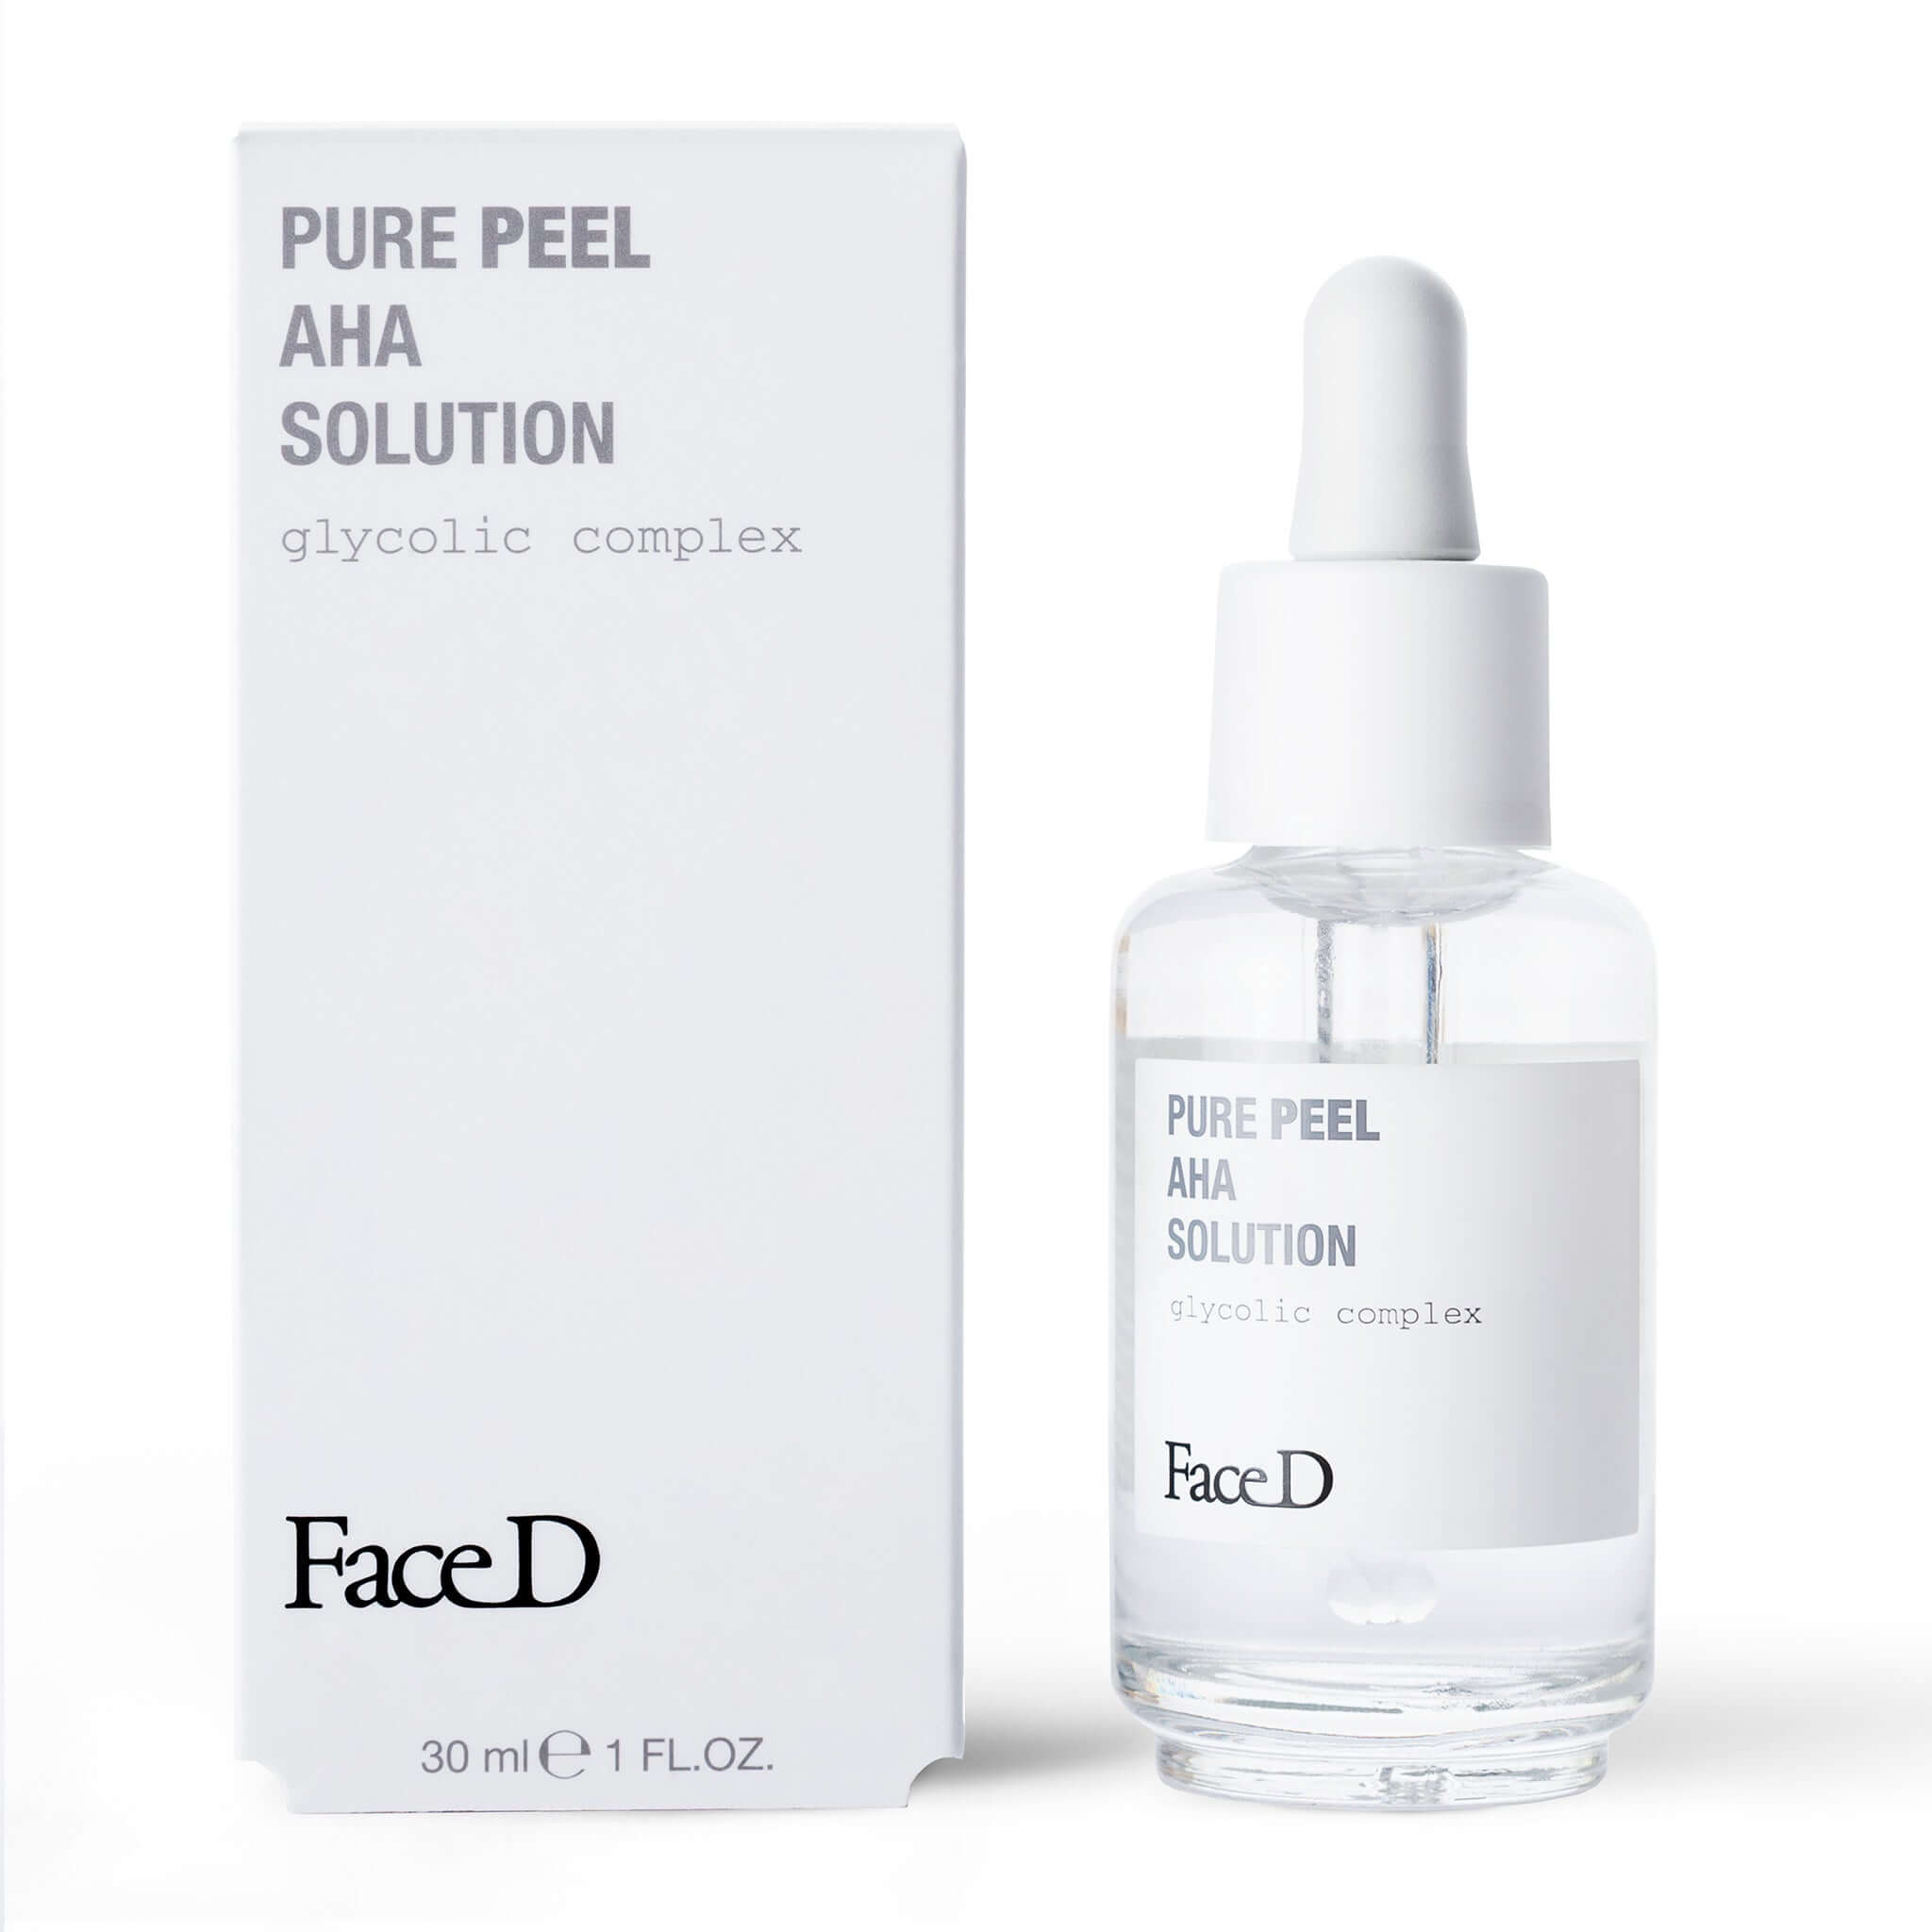 Pure-Peel-Solution-Aha-FaceD-Exfoliators || Pure-peel-soluzione-AHA-FaceD-Esfolianti